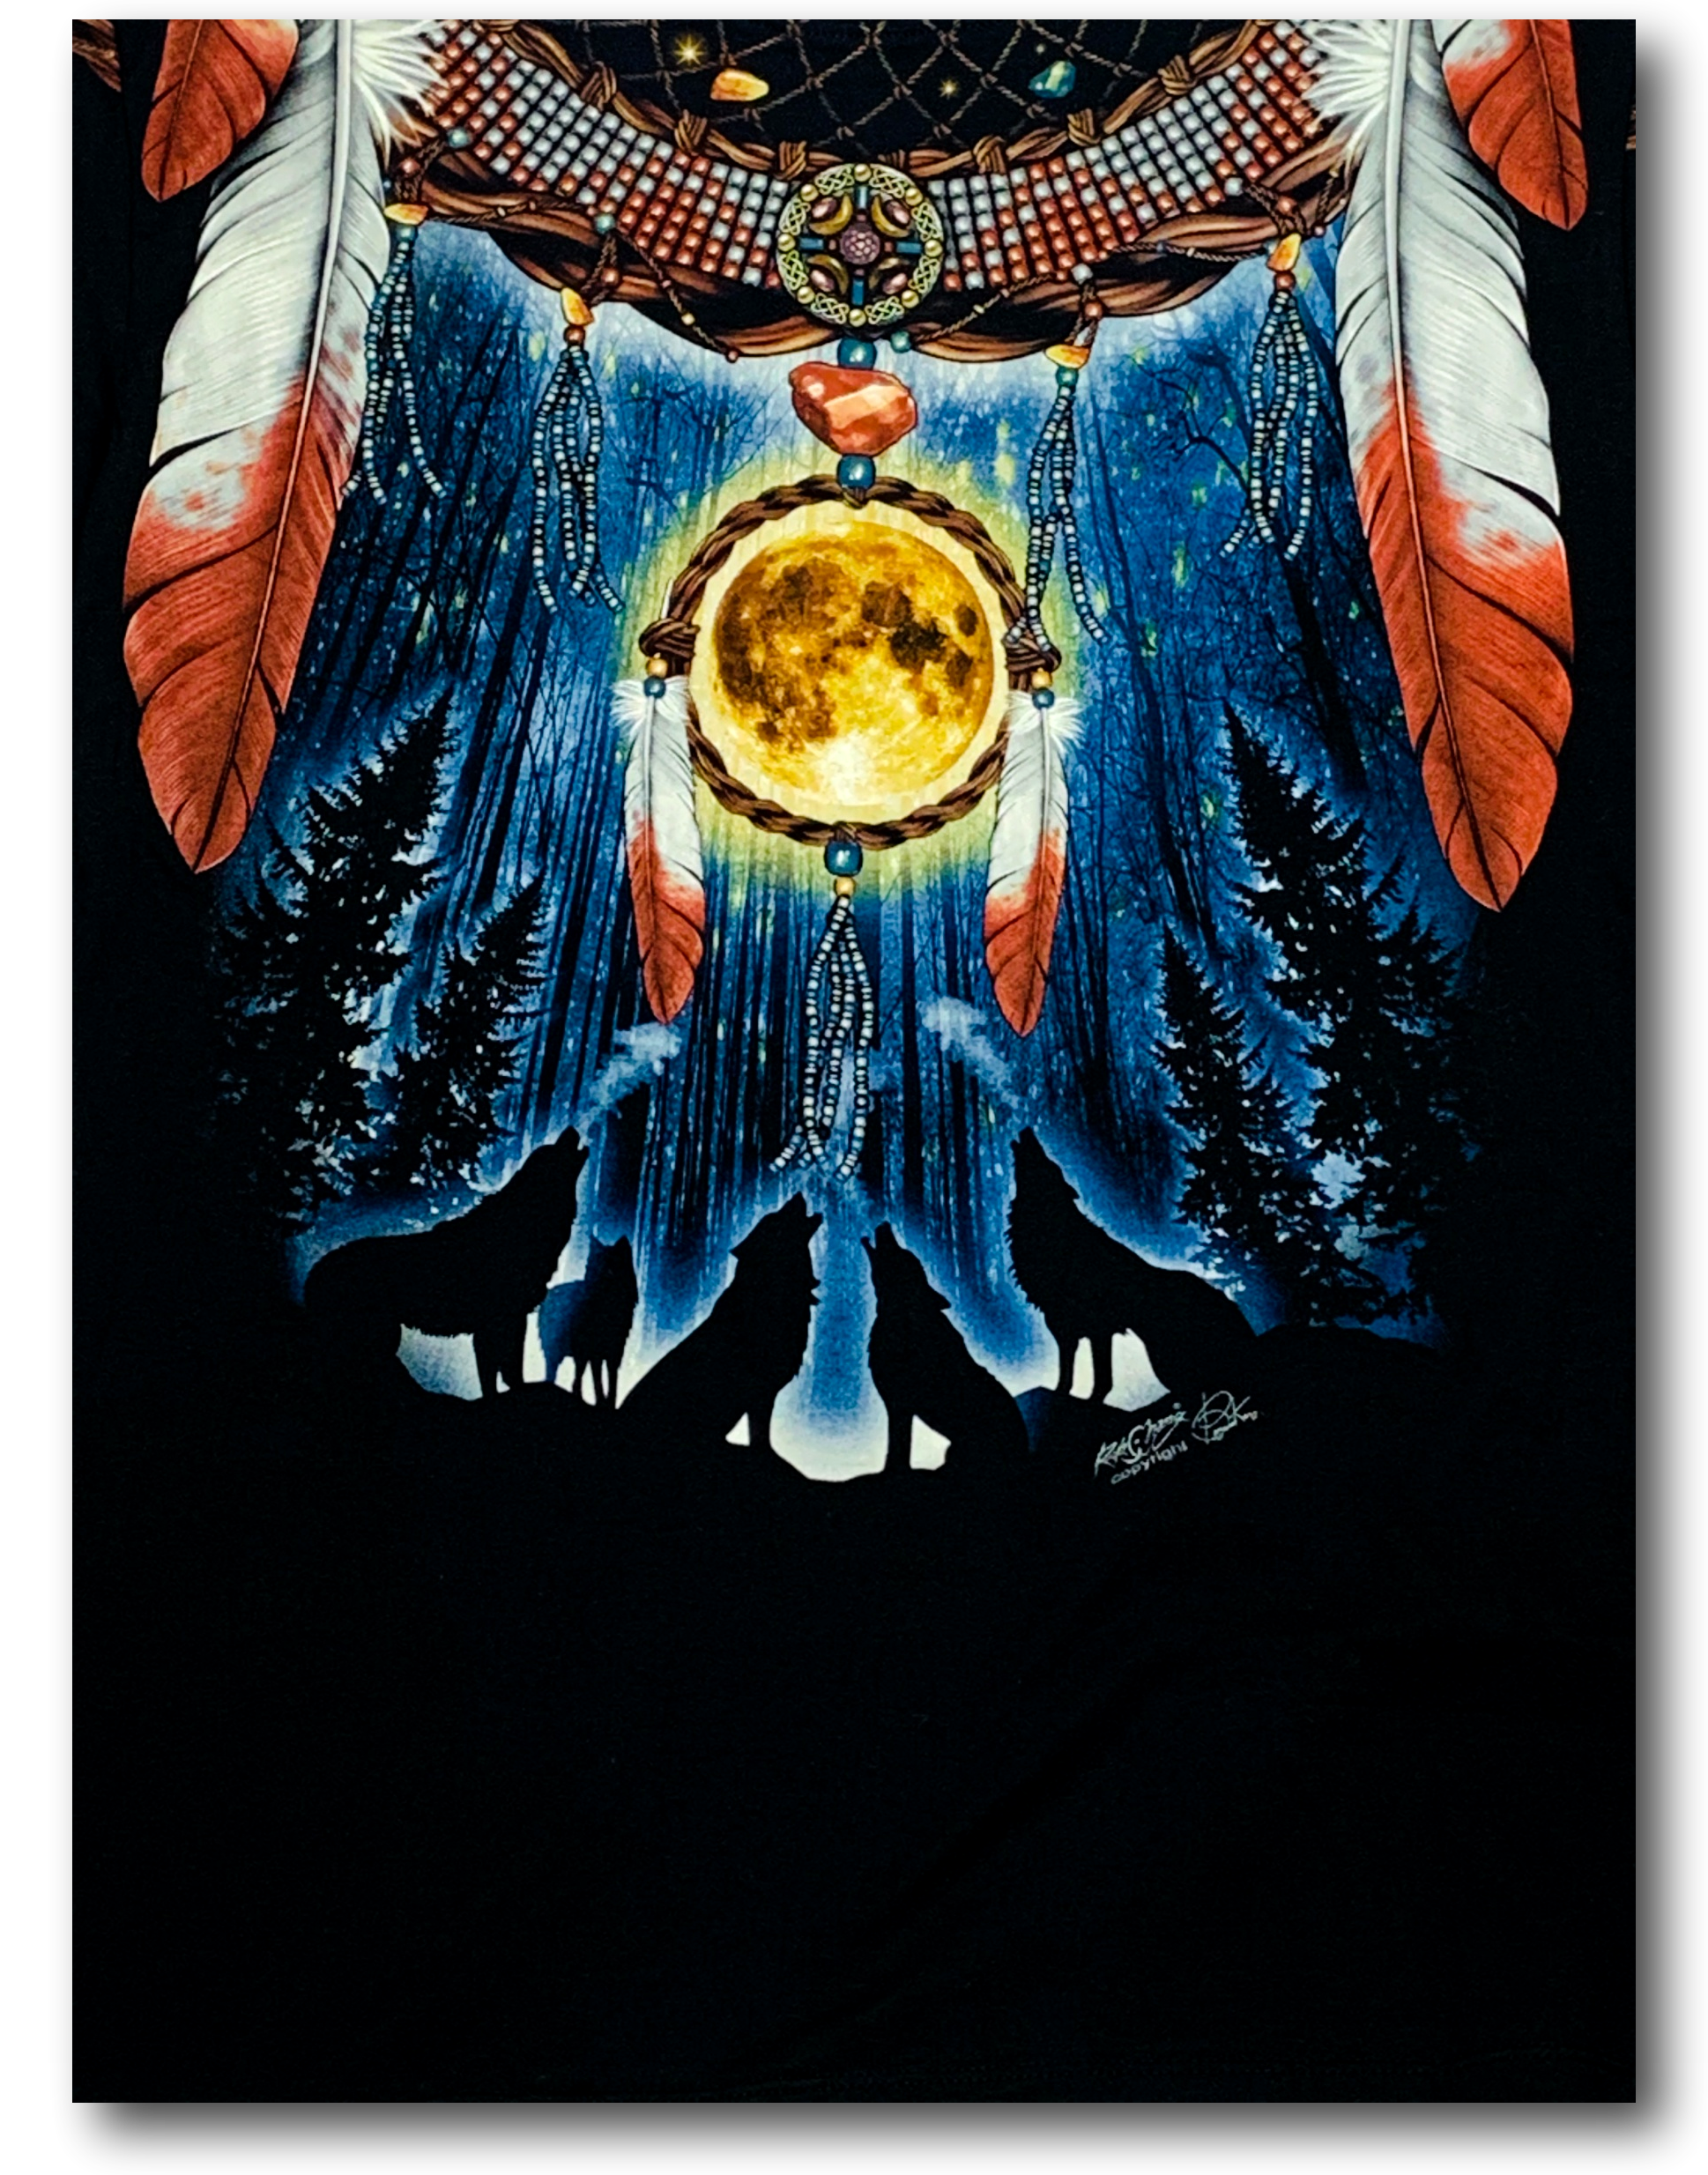 Native American Feathers Dream-catcher Glow in the Dark HD Rock Chang T-Shirt